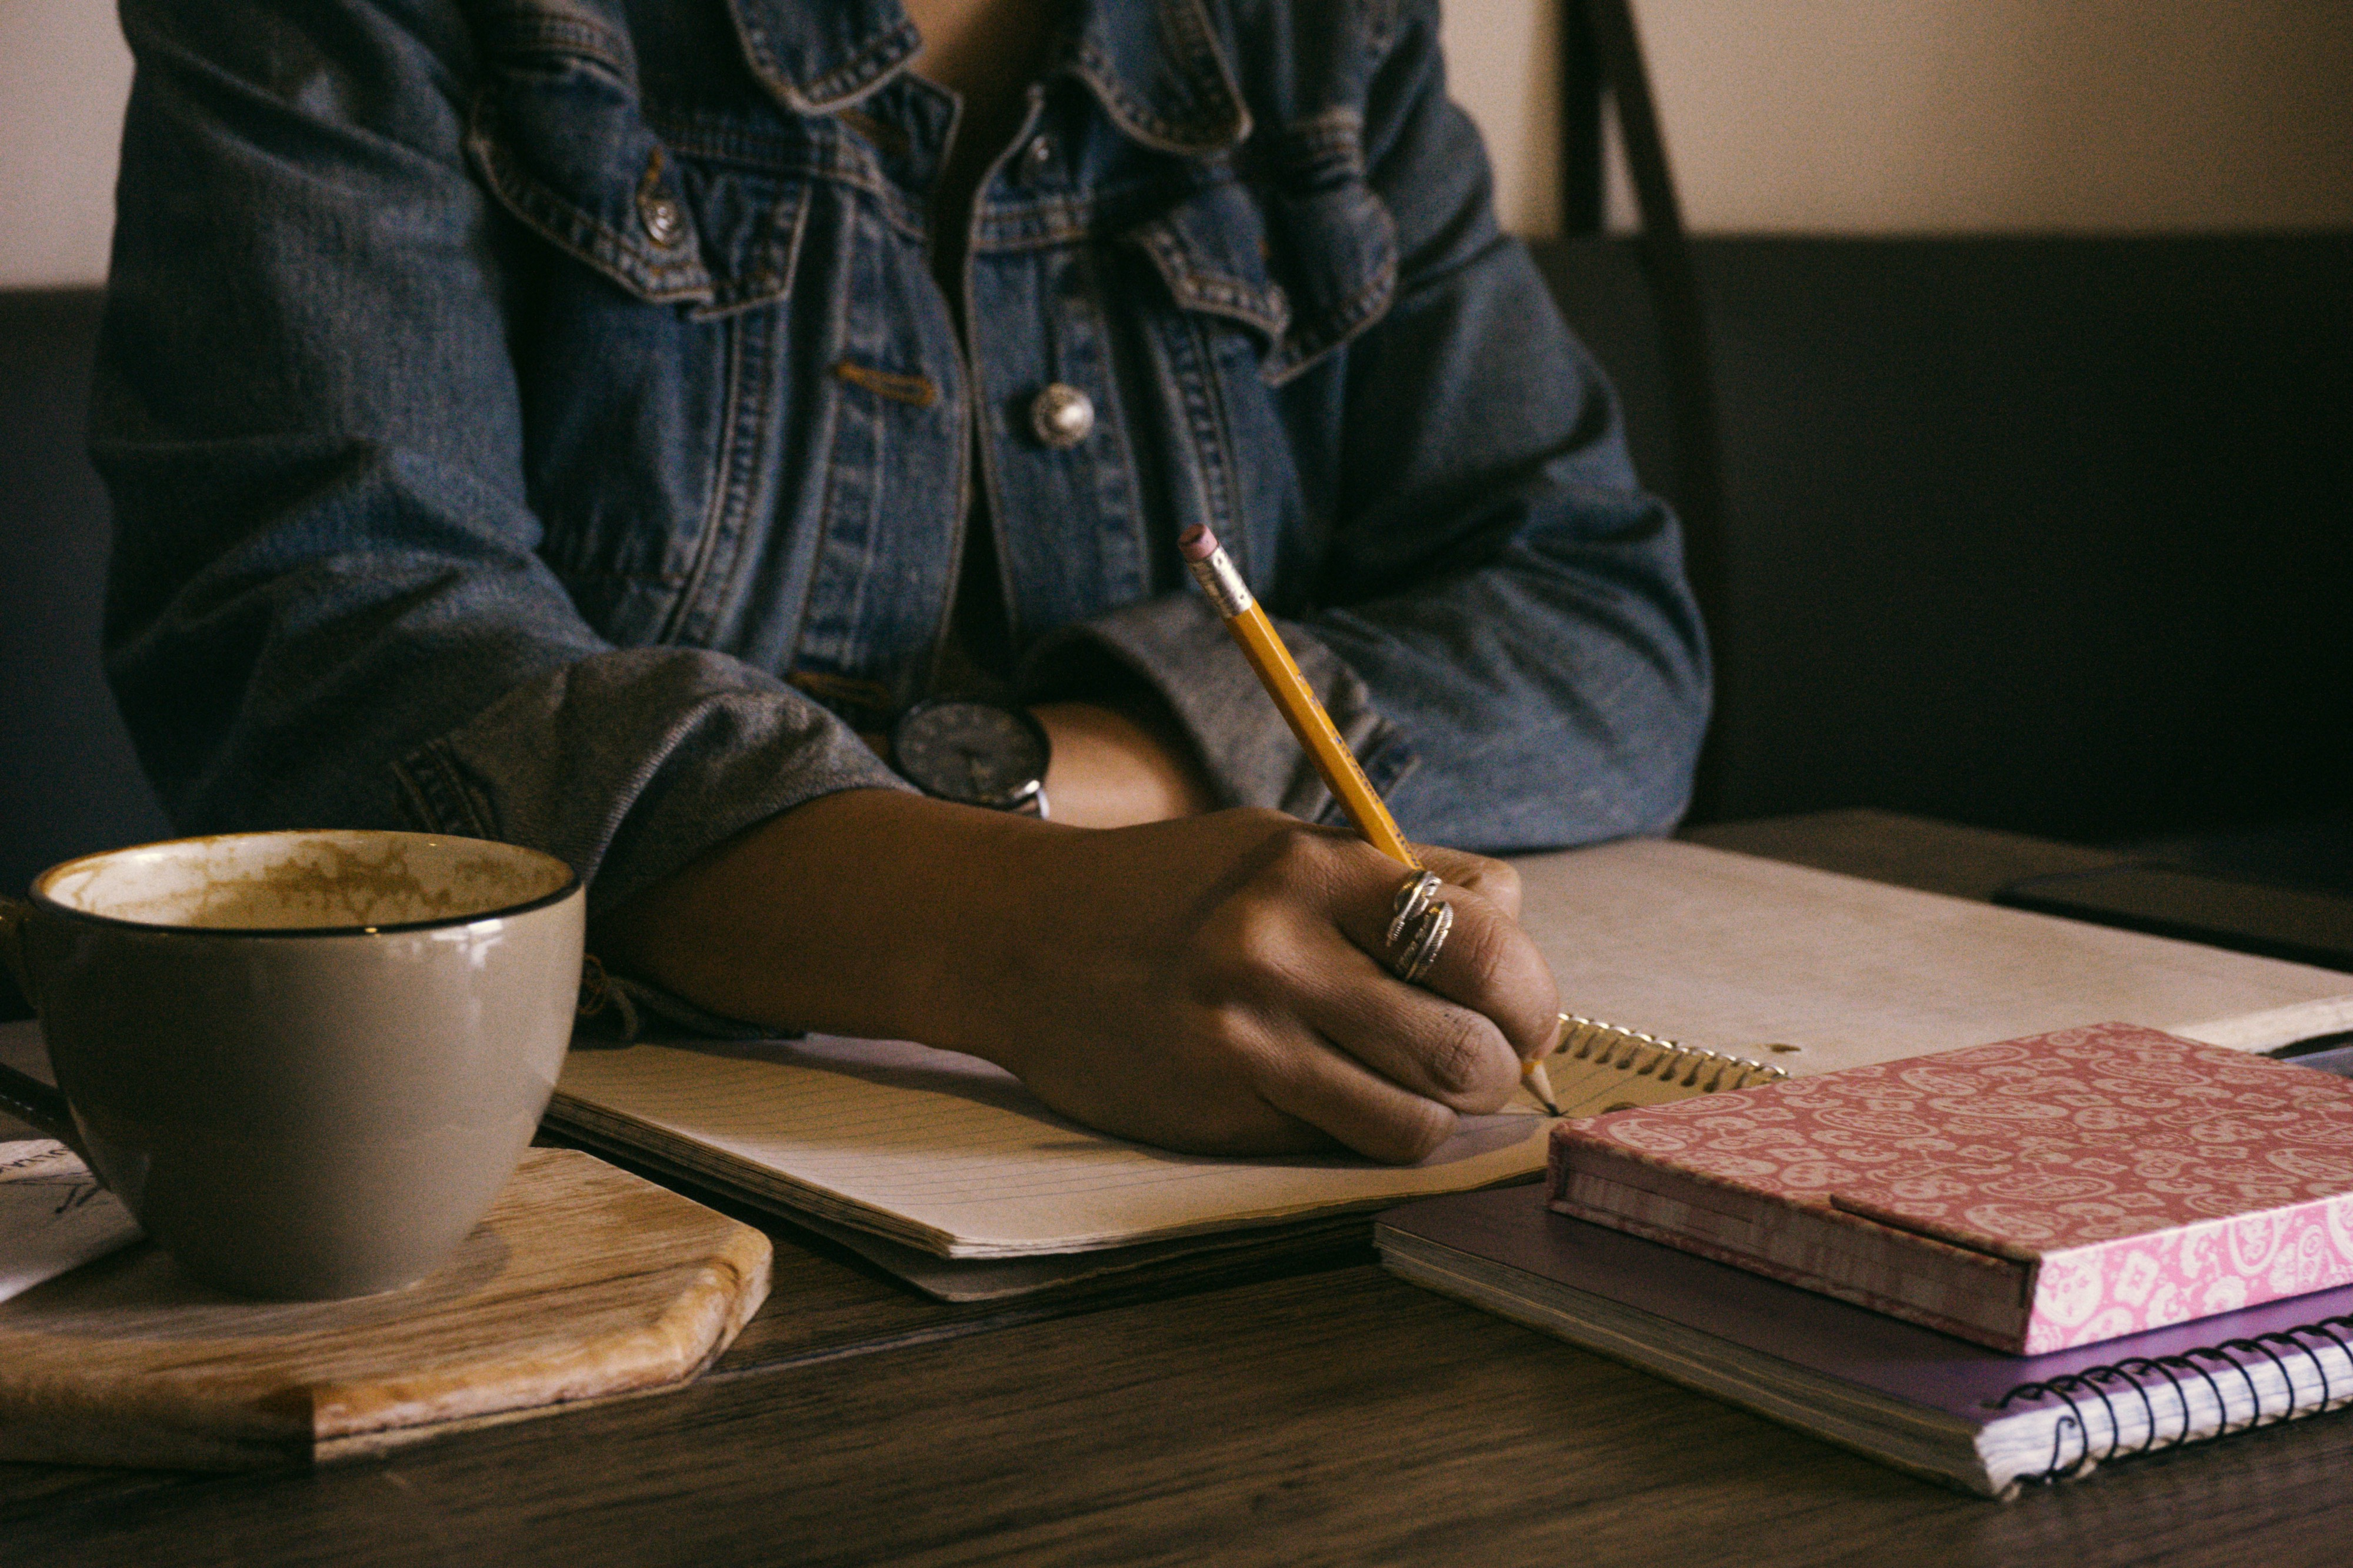 Brown skinned black woman in denim jacket writing in notebook with a pencil. A cup of coffee and two books rest on the table.